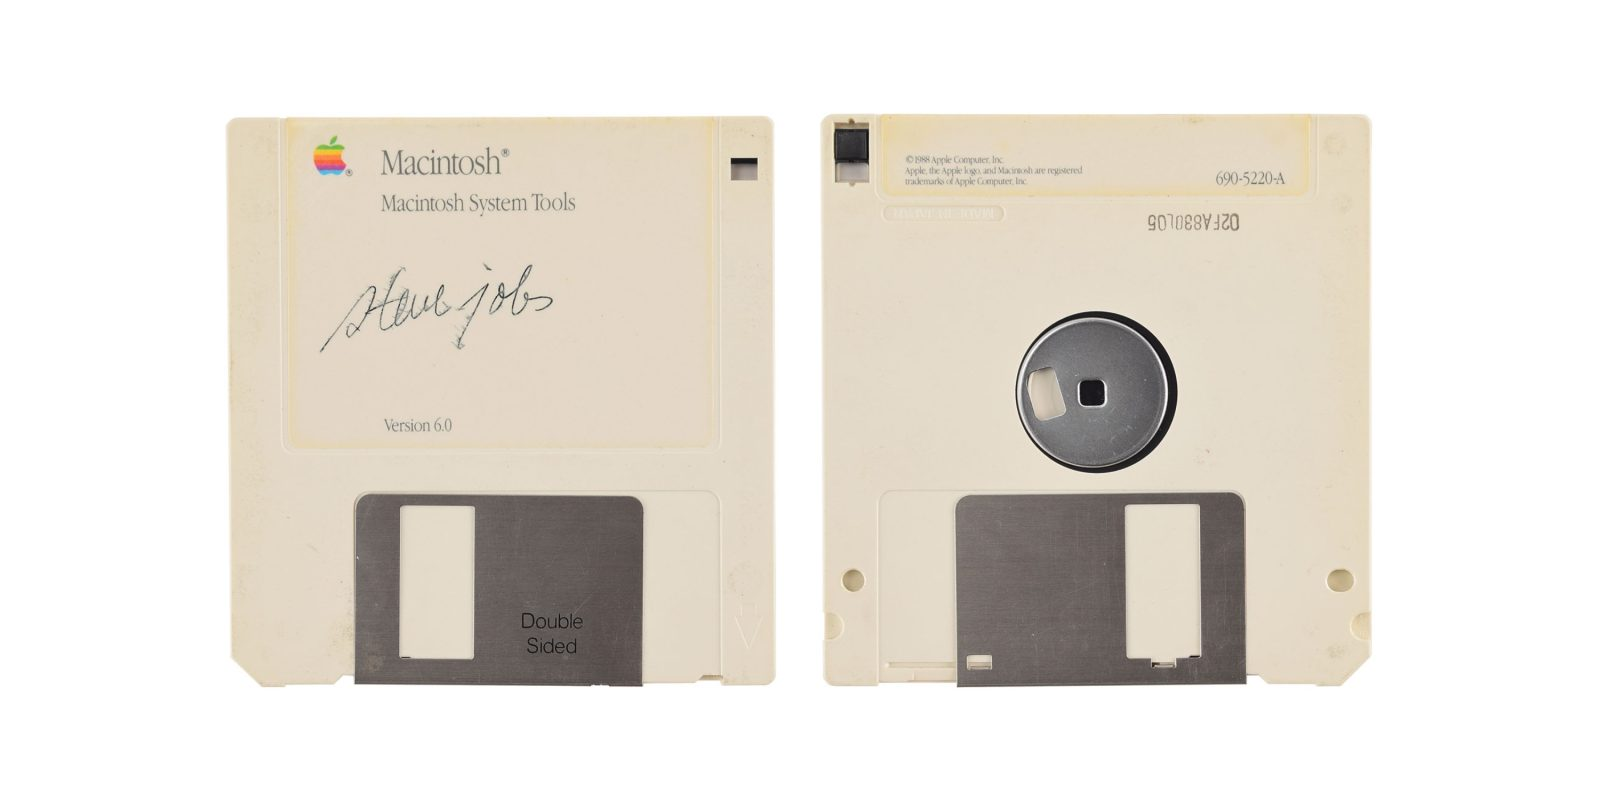 Signed Steve Jobs Macintosh floppy disk up for auction — the perfect $7500 stocking stuffer